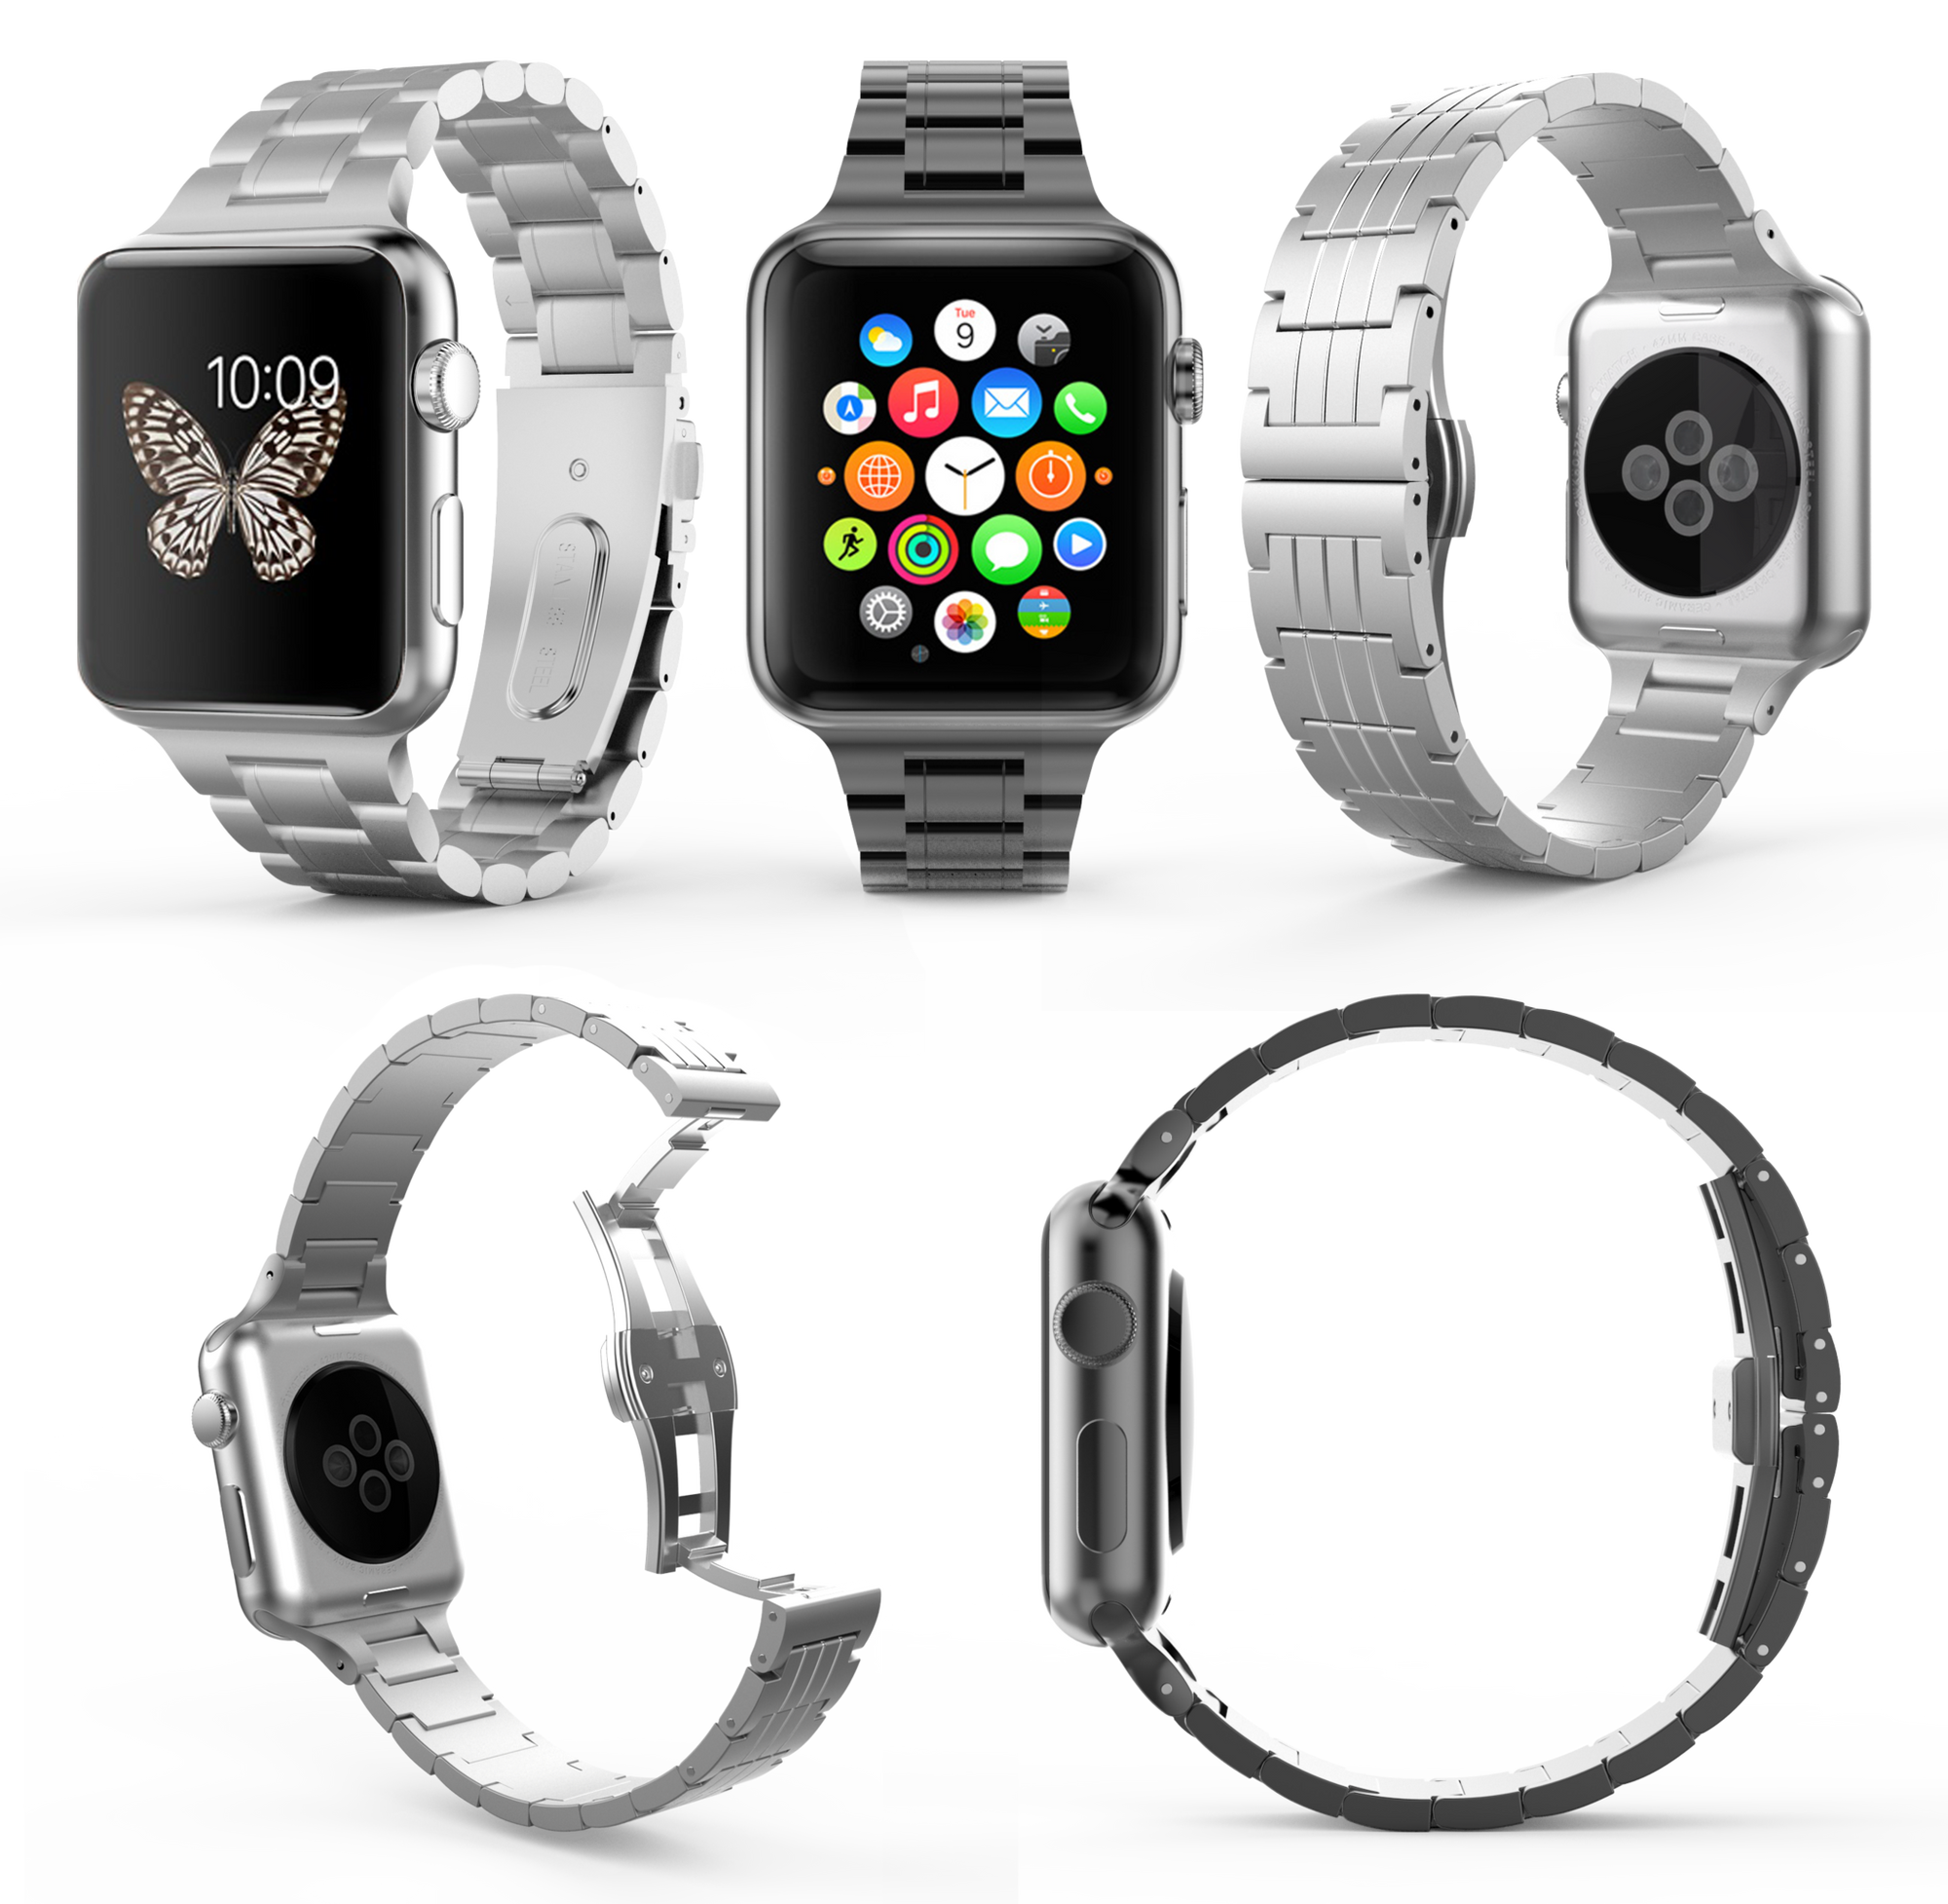 iphone announced new watches powered lte i plus most series of today blog along the and apple phone data s x launch features with interesting by esim watch